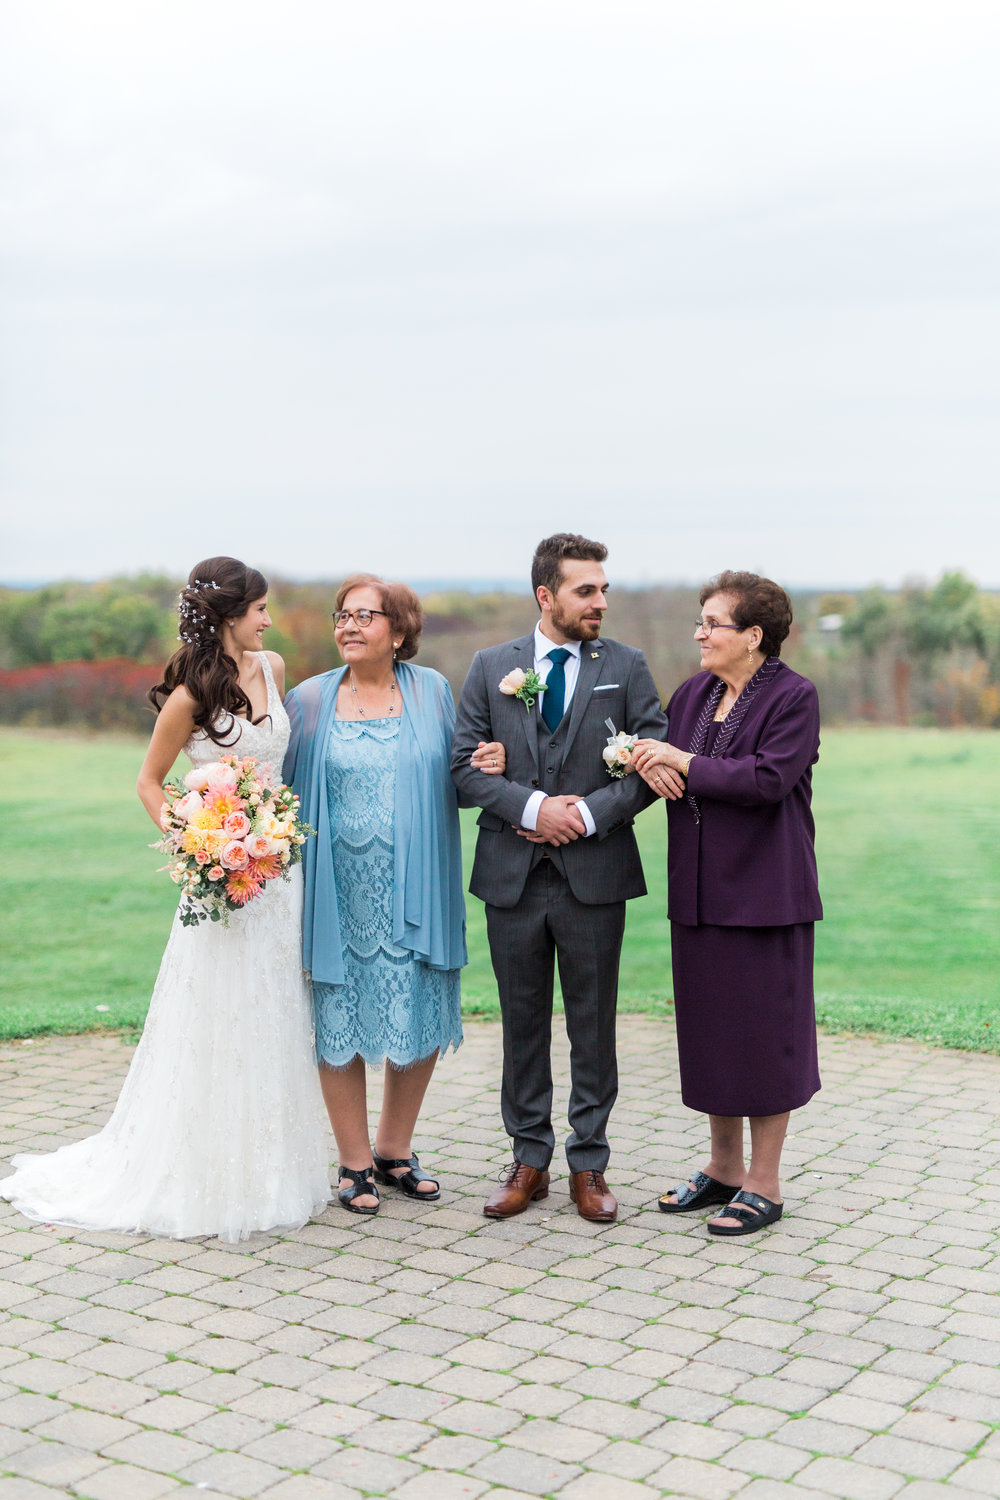 Amir-Golbazi-Danielle-Giroux-Photography_Toronto-Wedding_Cedarwood_Rachel-Paul_349.jpg